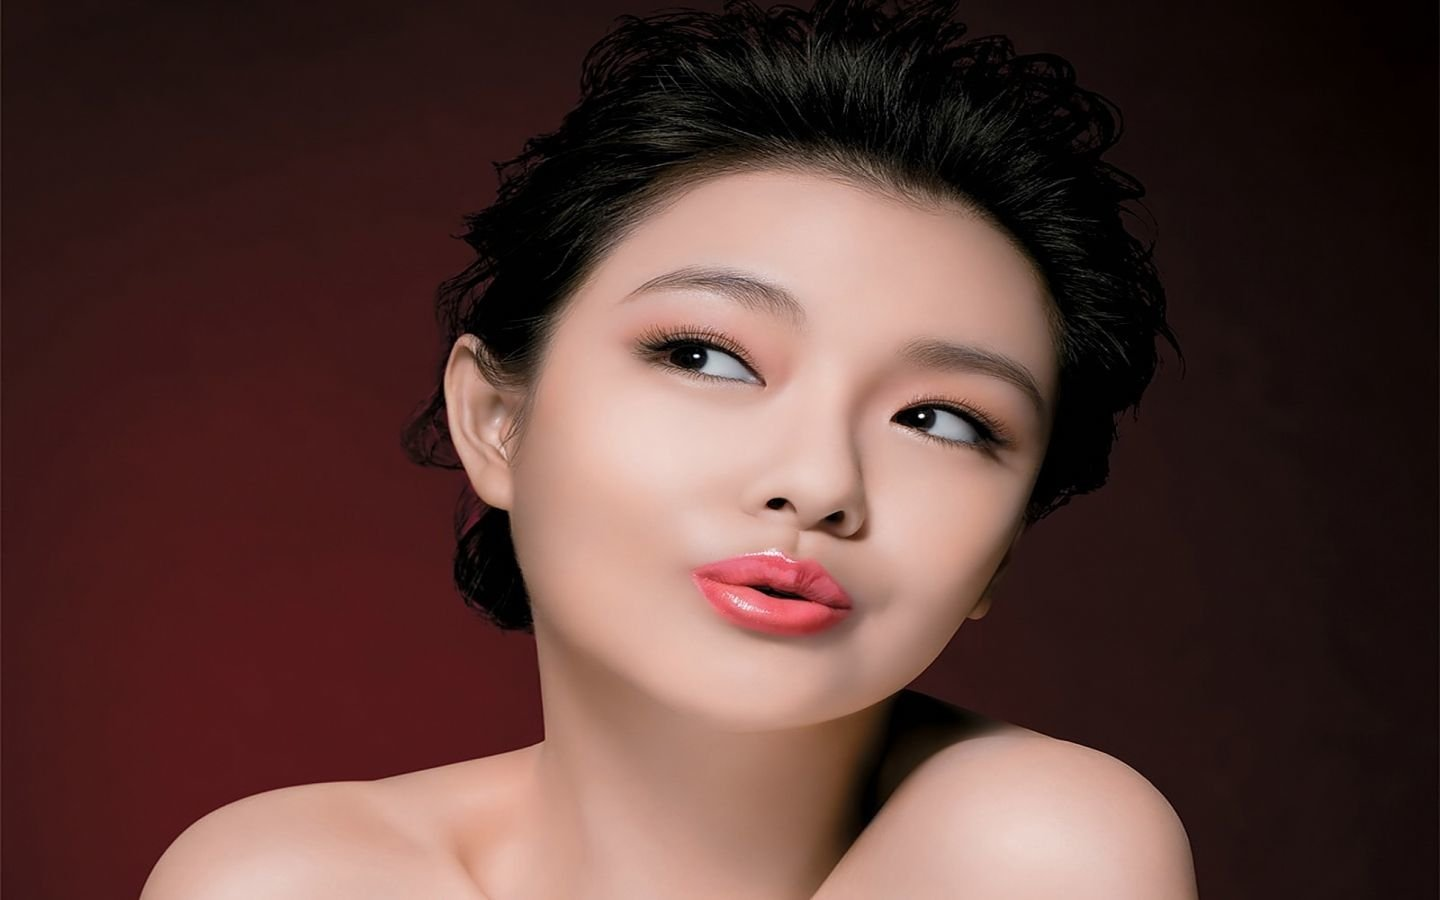 1440x900 - Barbie Hsu Wallpapers 30